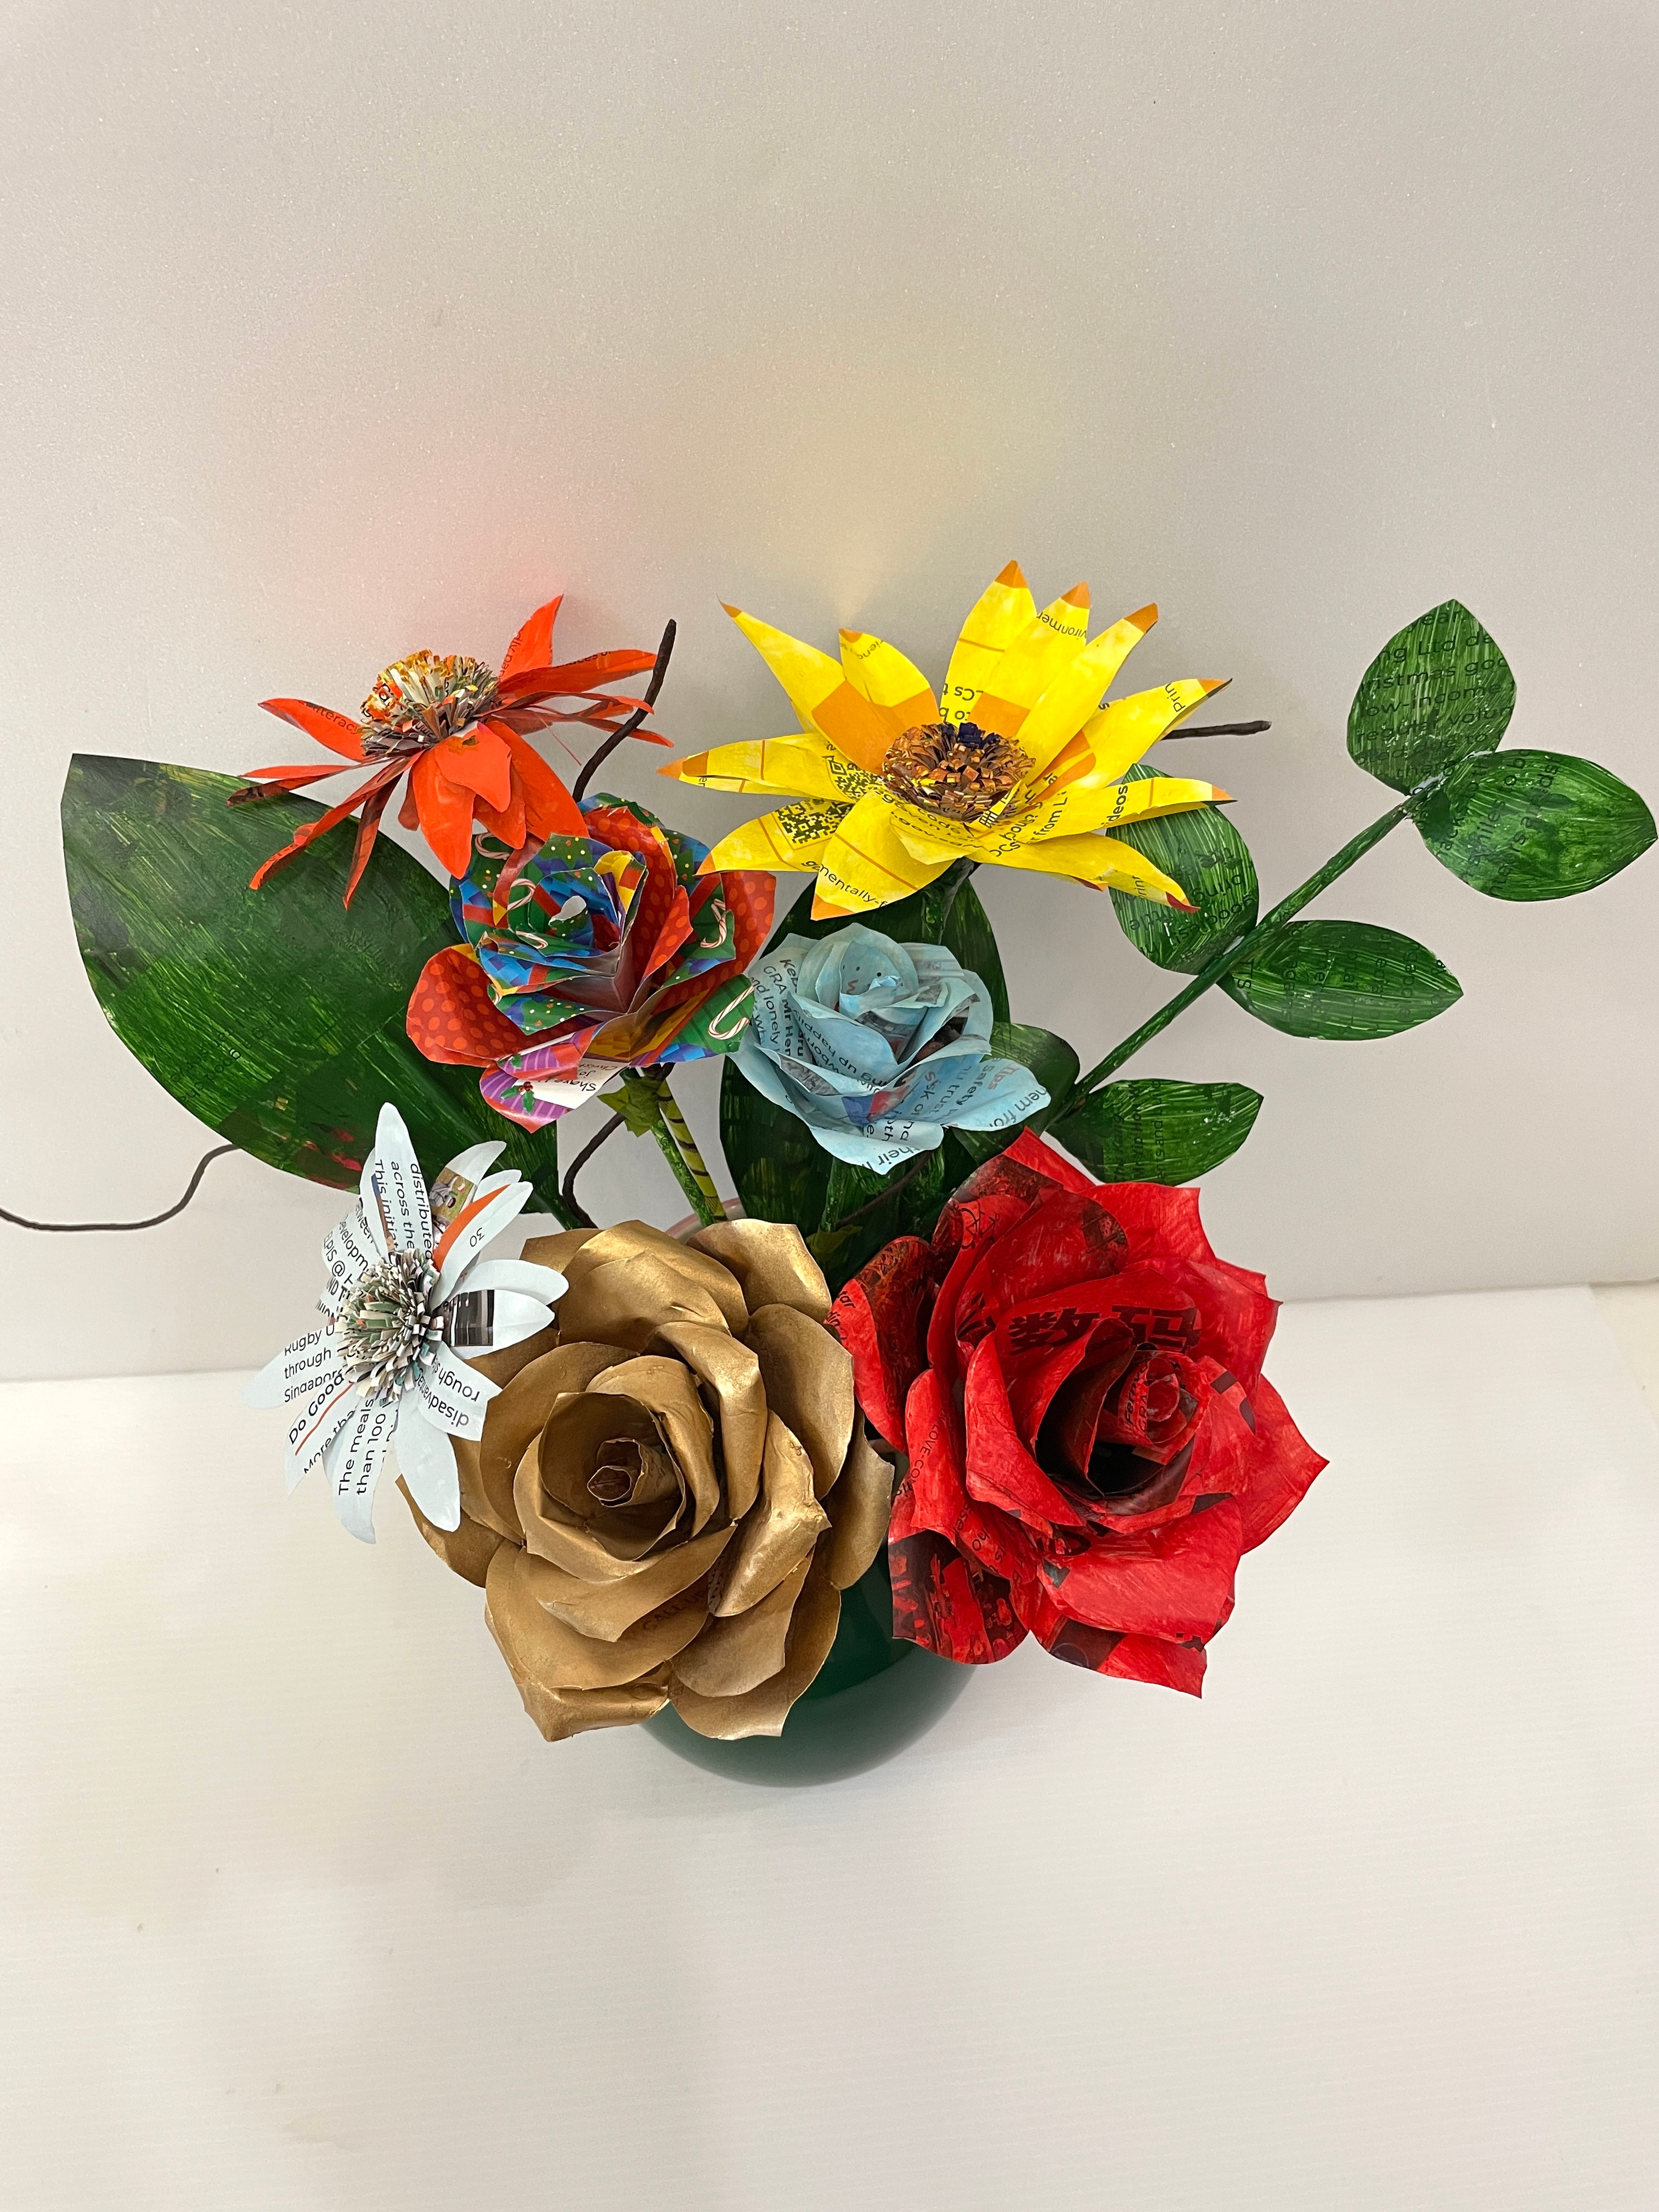 Upcycling workshop for paper flowers